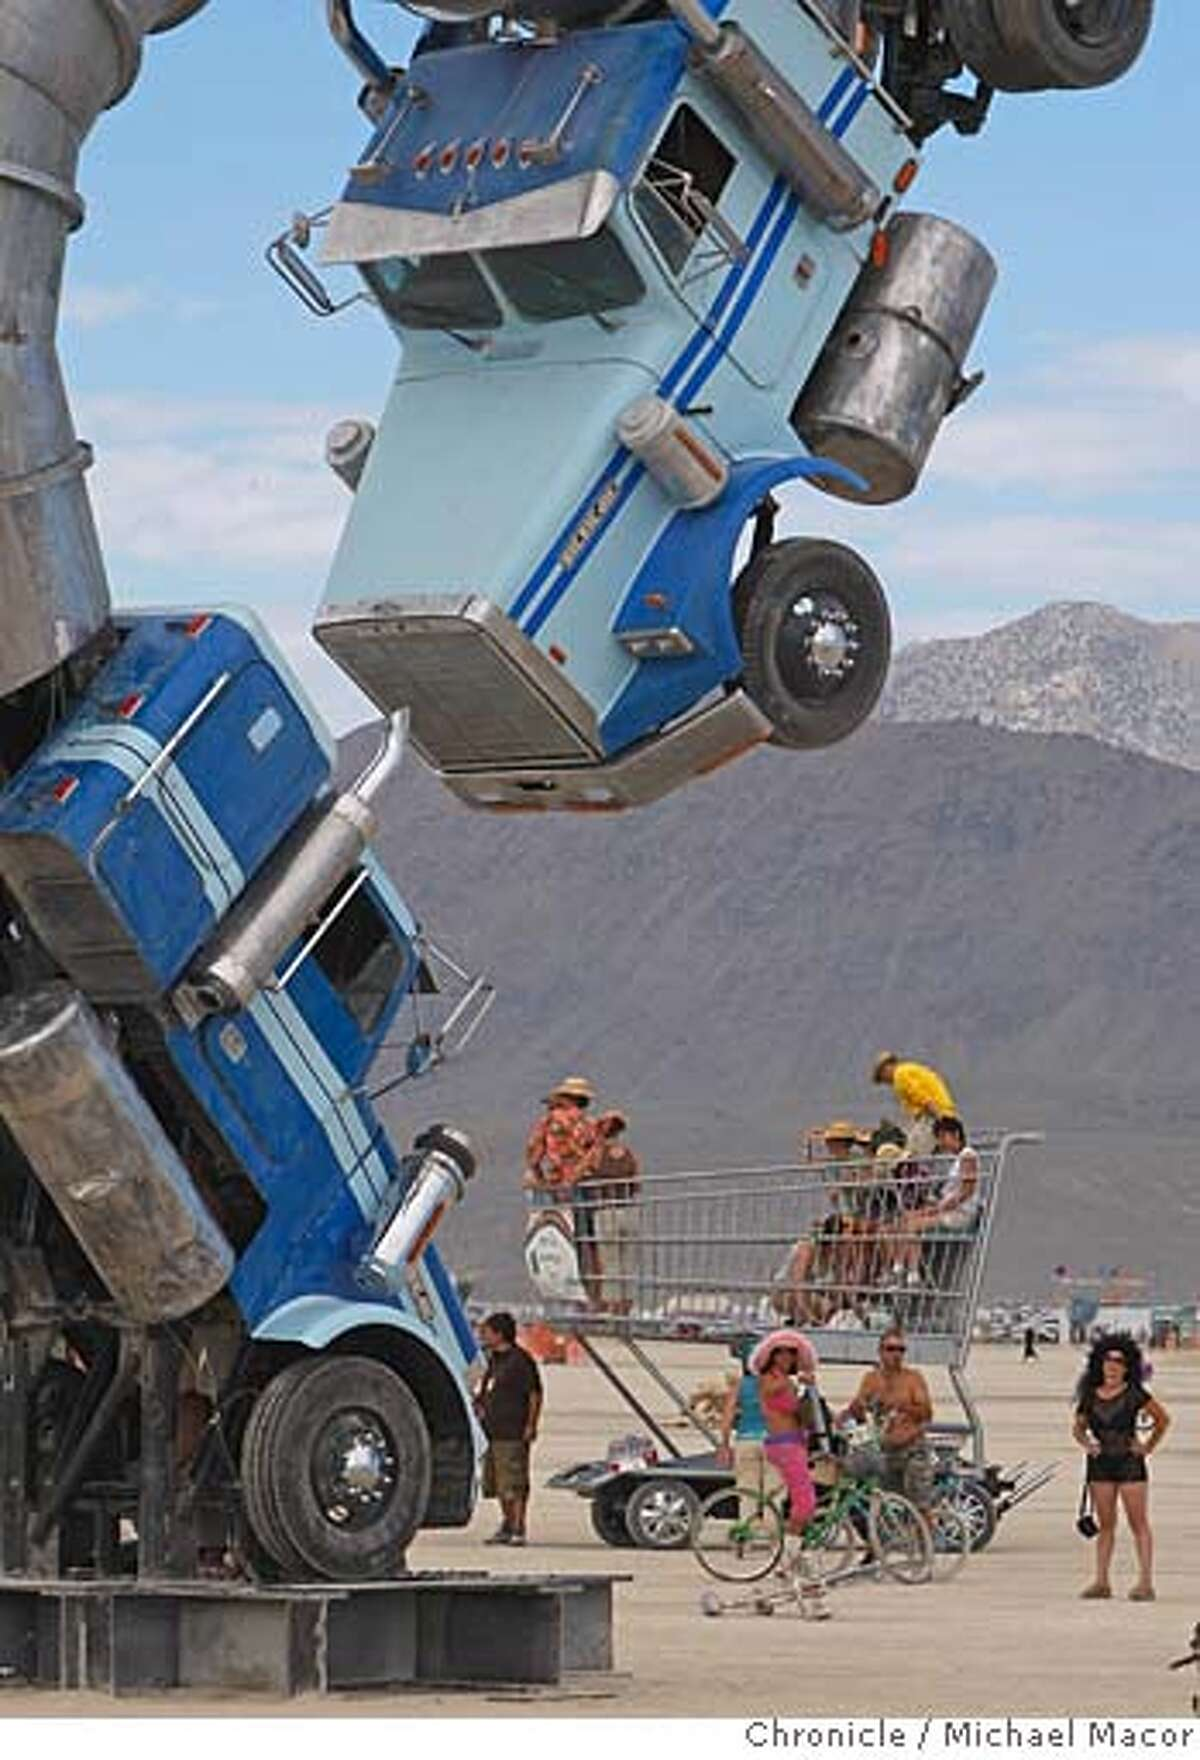 burningman_040_mac.jpg Artpiece, Big Rig Jig by Mike Ross combines a couple of BIg Rig semi trucks into art. A very large shopping cart stops nearby to get a look of the artpiece. Burning Man 2007. Photographed in, Black Rock City, Nv, on 8/31/07. Photo by: Michael Macor/ The Chronicle